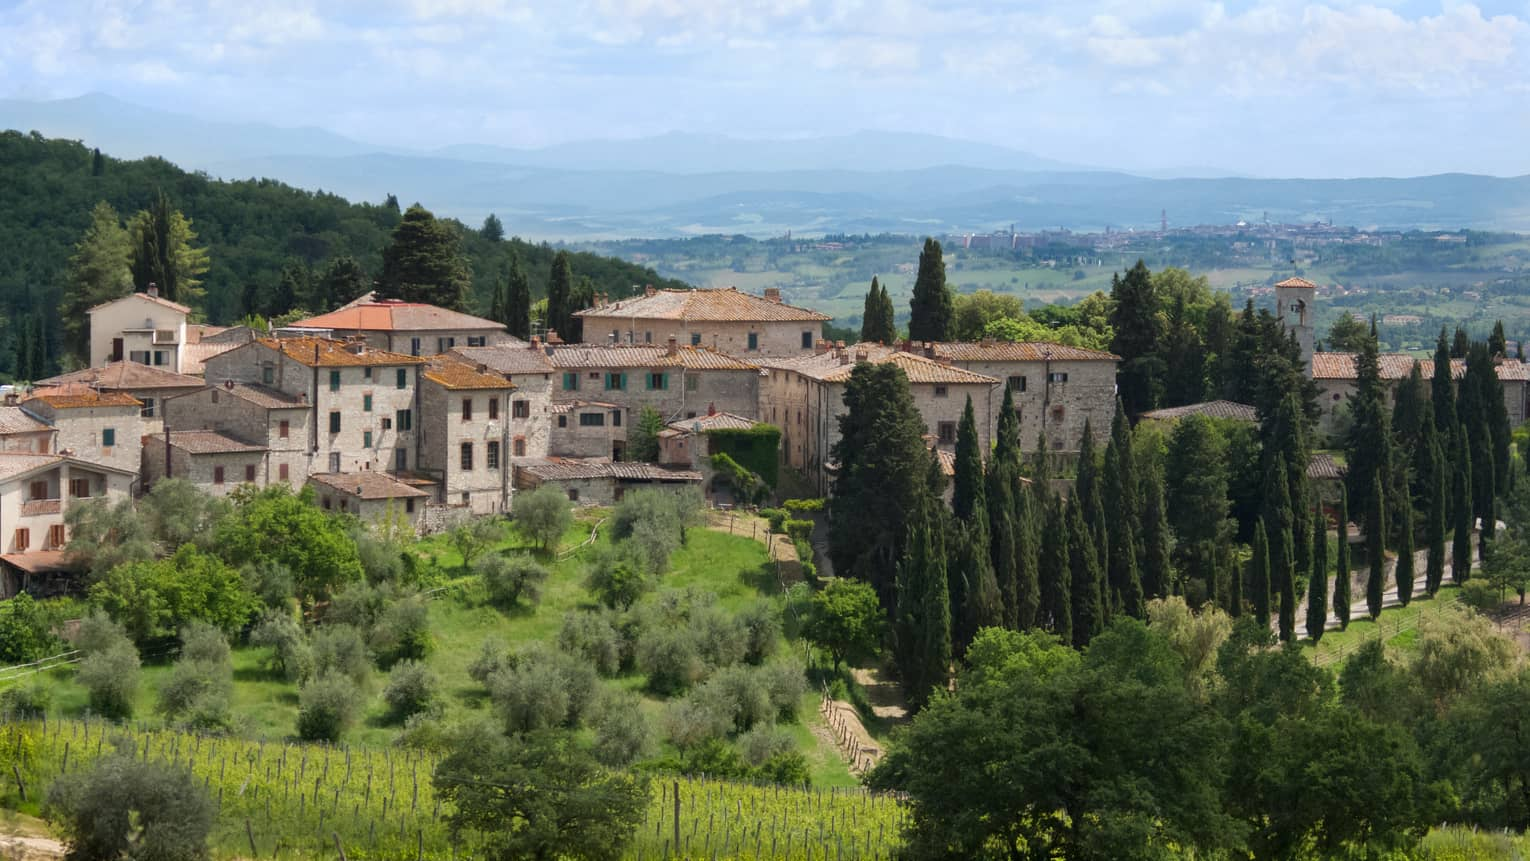 Tuscan countryside with historic stone building against rolling green hills